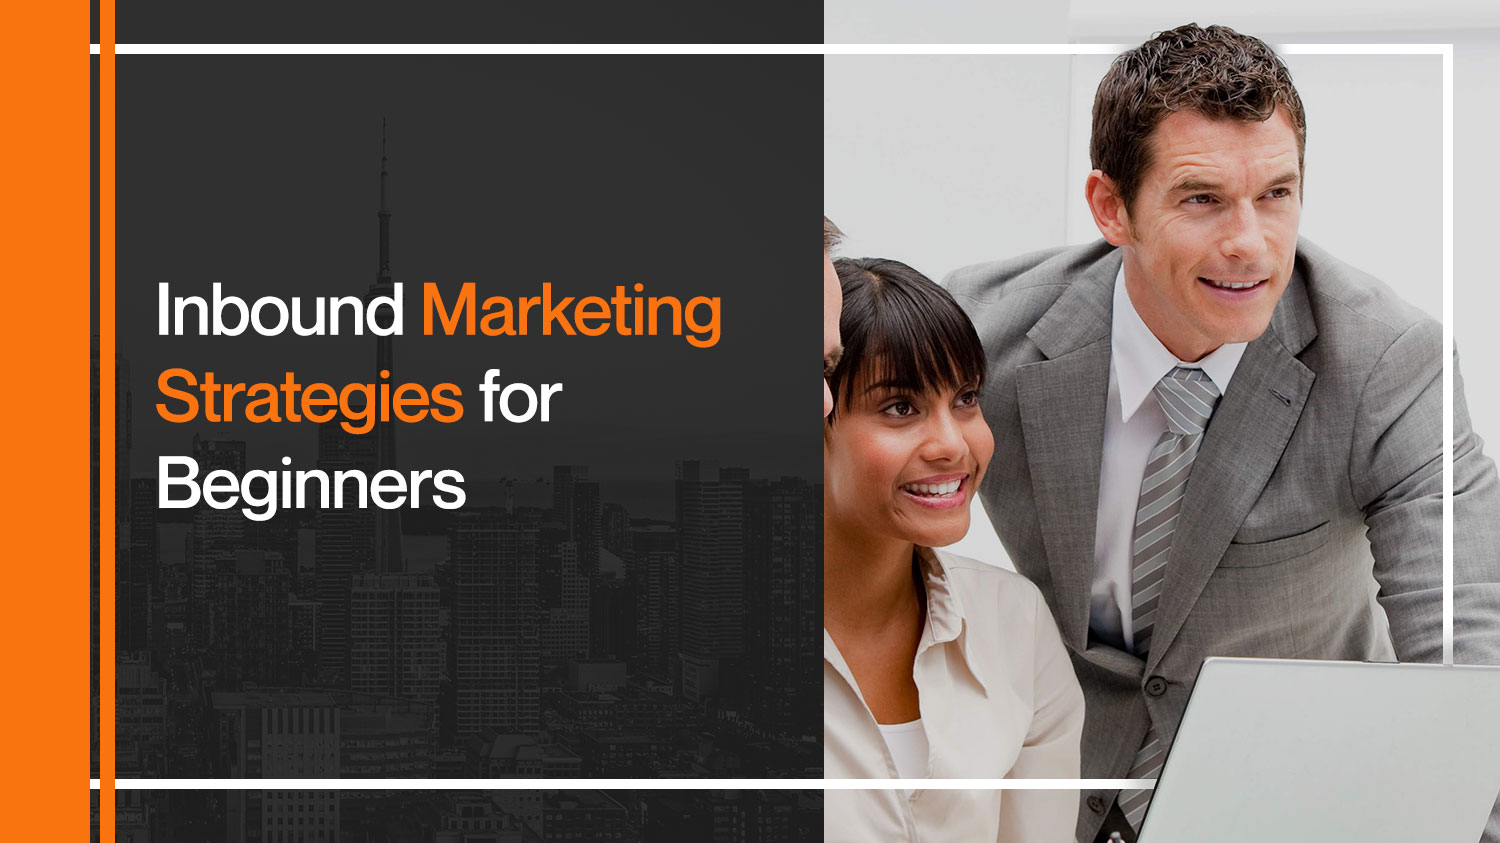 A man and a woman wear formal while learning inbound marketing